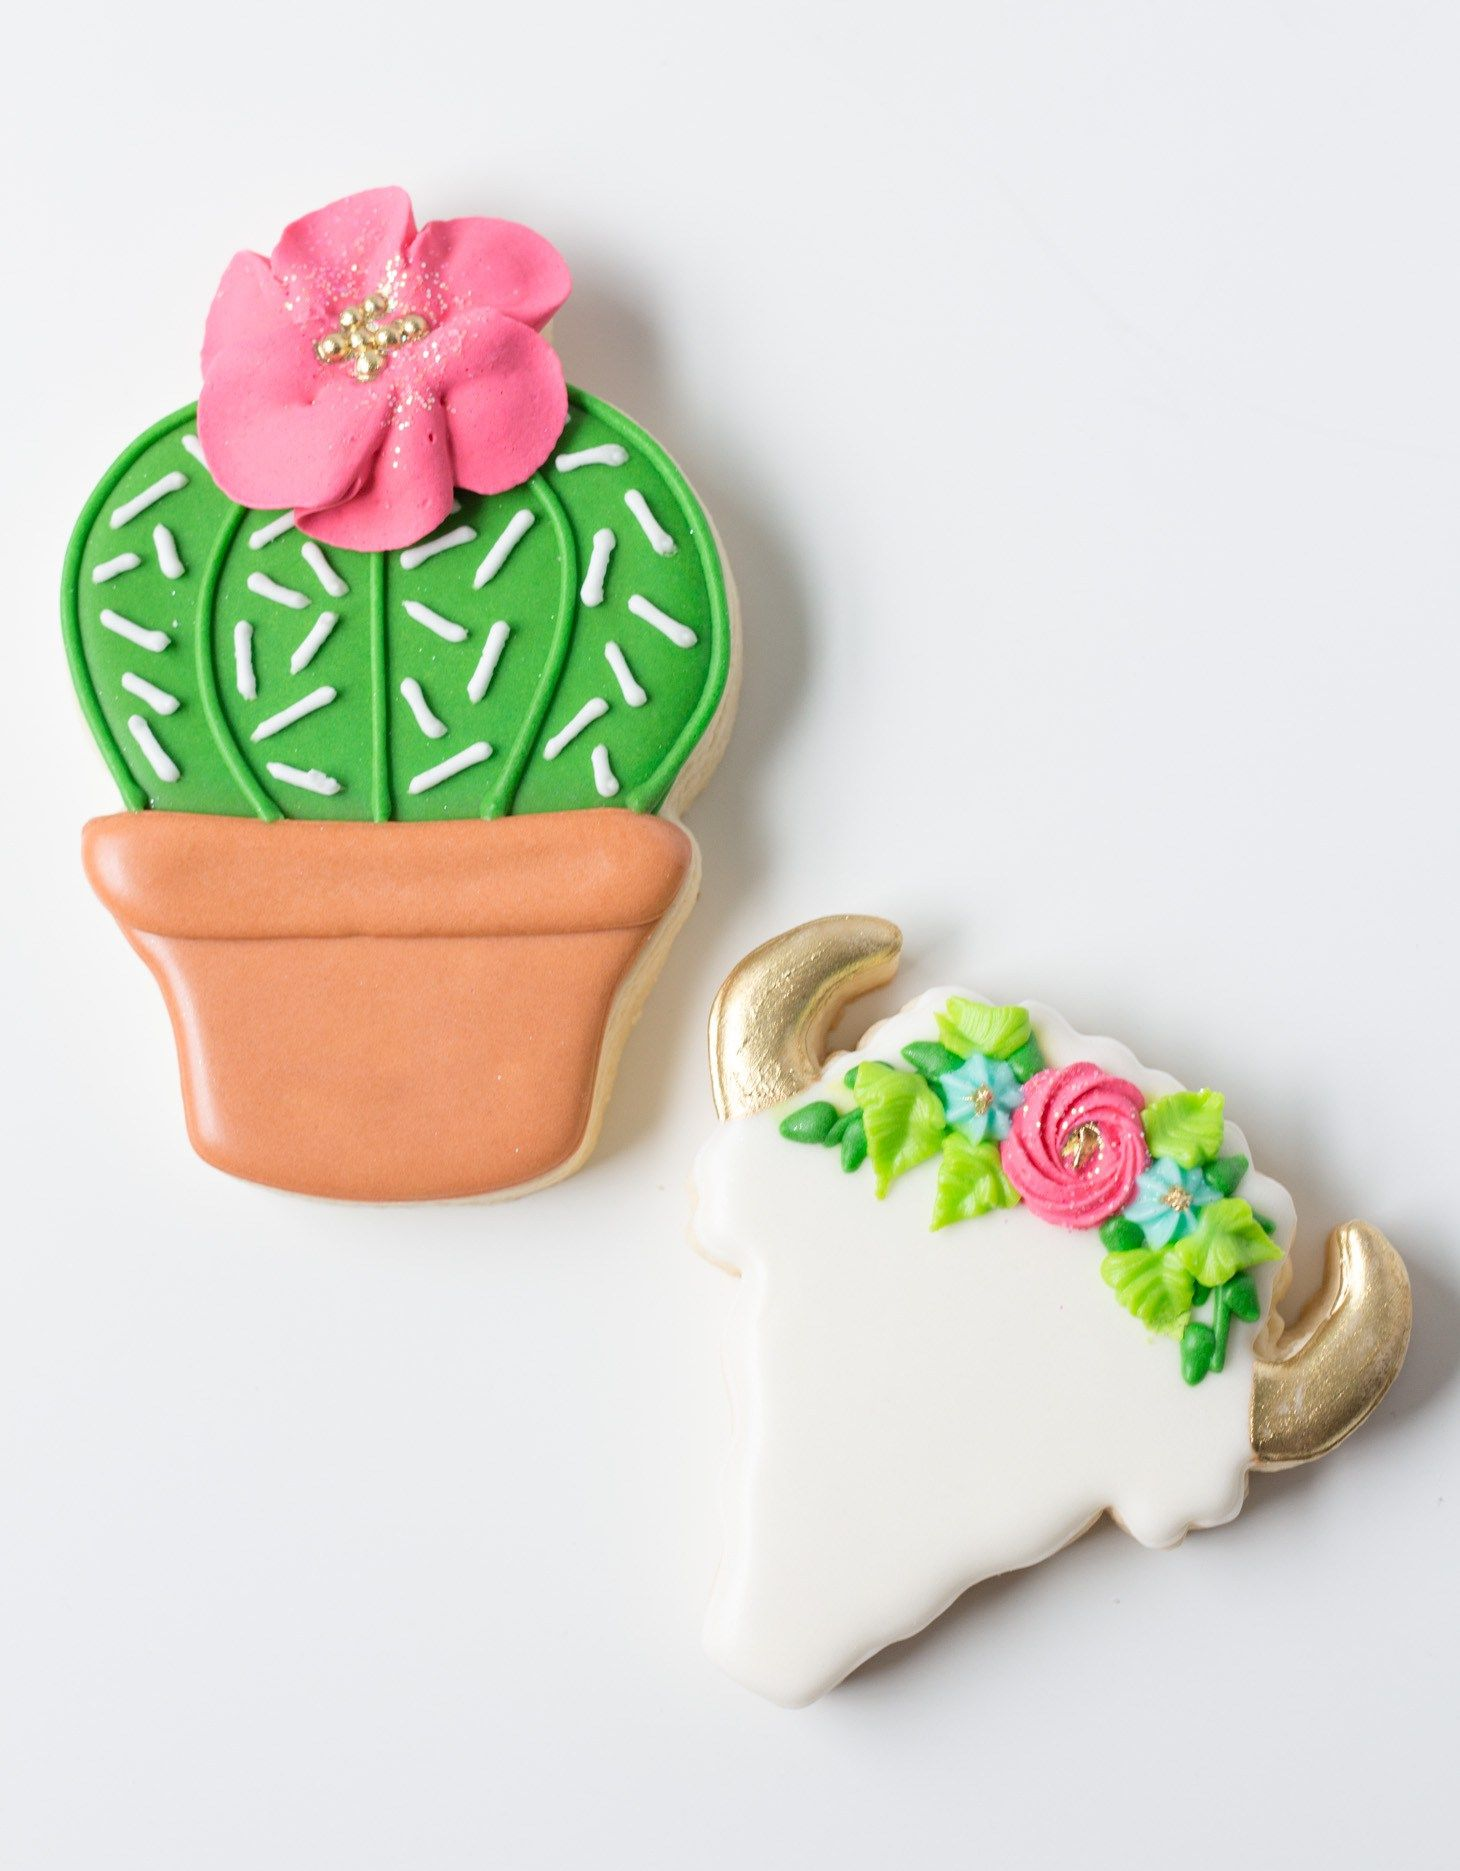 Cookies In Destin Florida Shares Her Tips For Baking And Decorating Sugar With Royal Icing They Are Perfect Mothers Day Birthday Parties